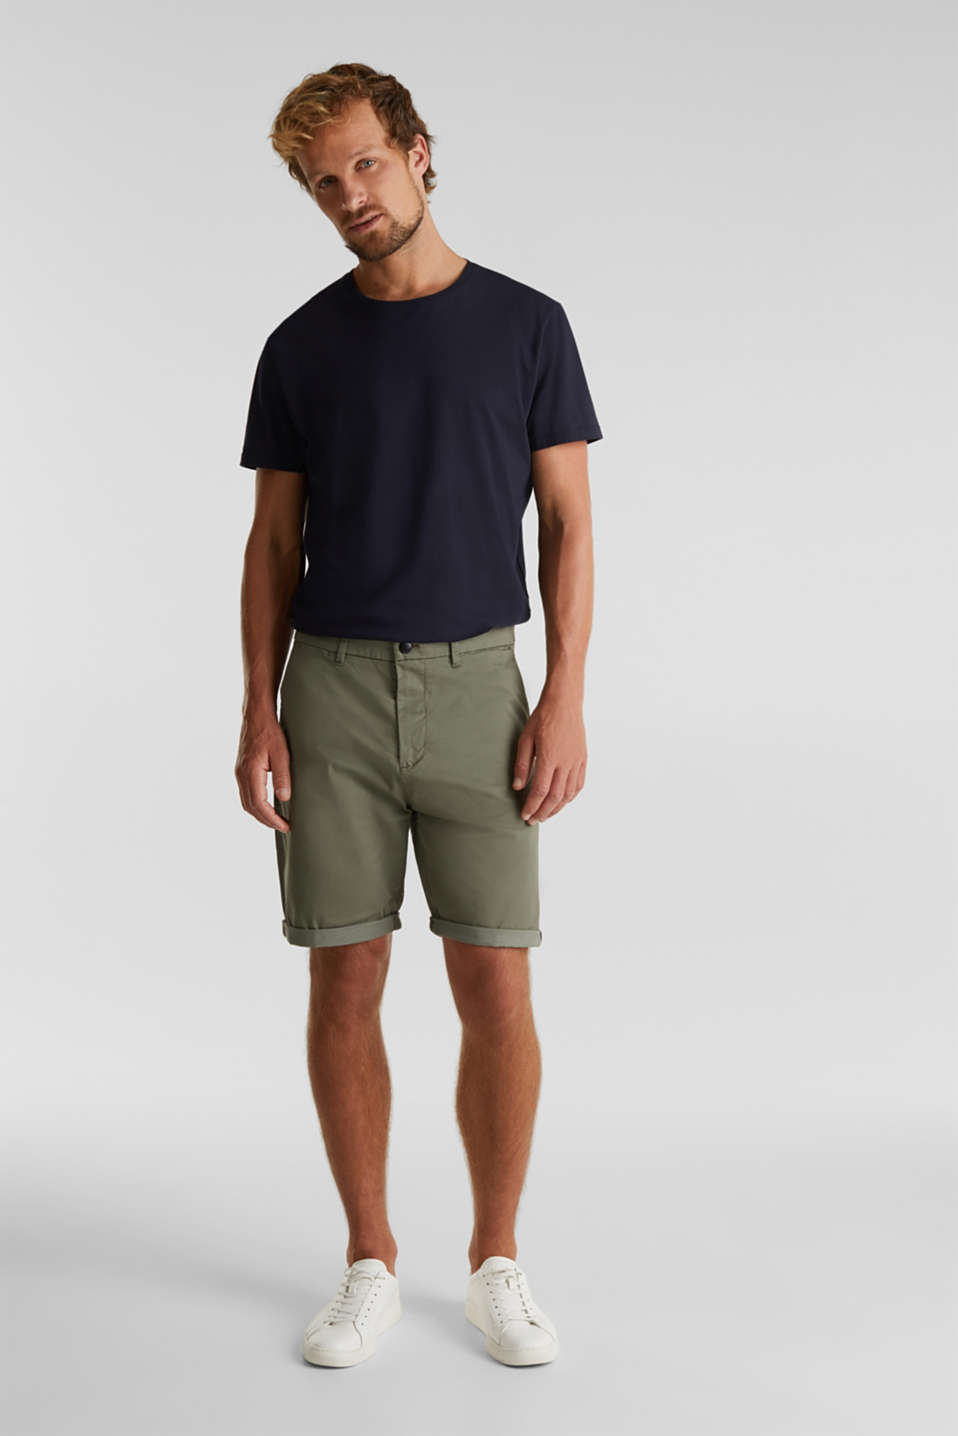 Shorts with COOLMAX®, organic cotton, LIGHT KHAKI, detail image number 1